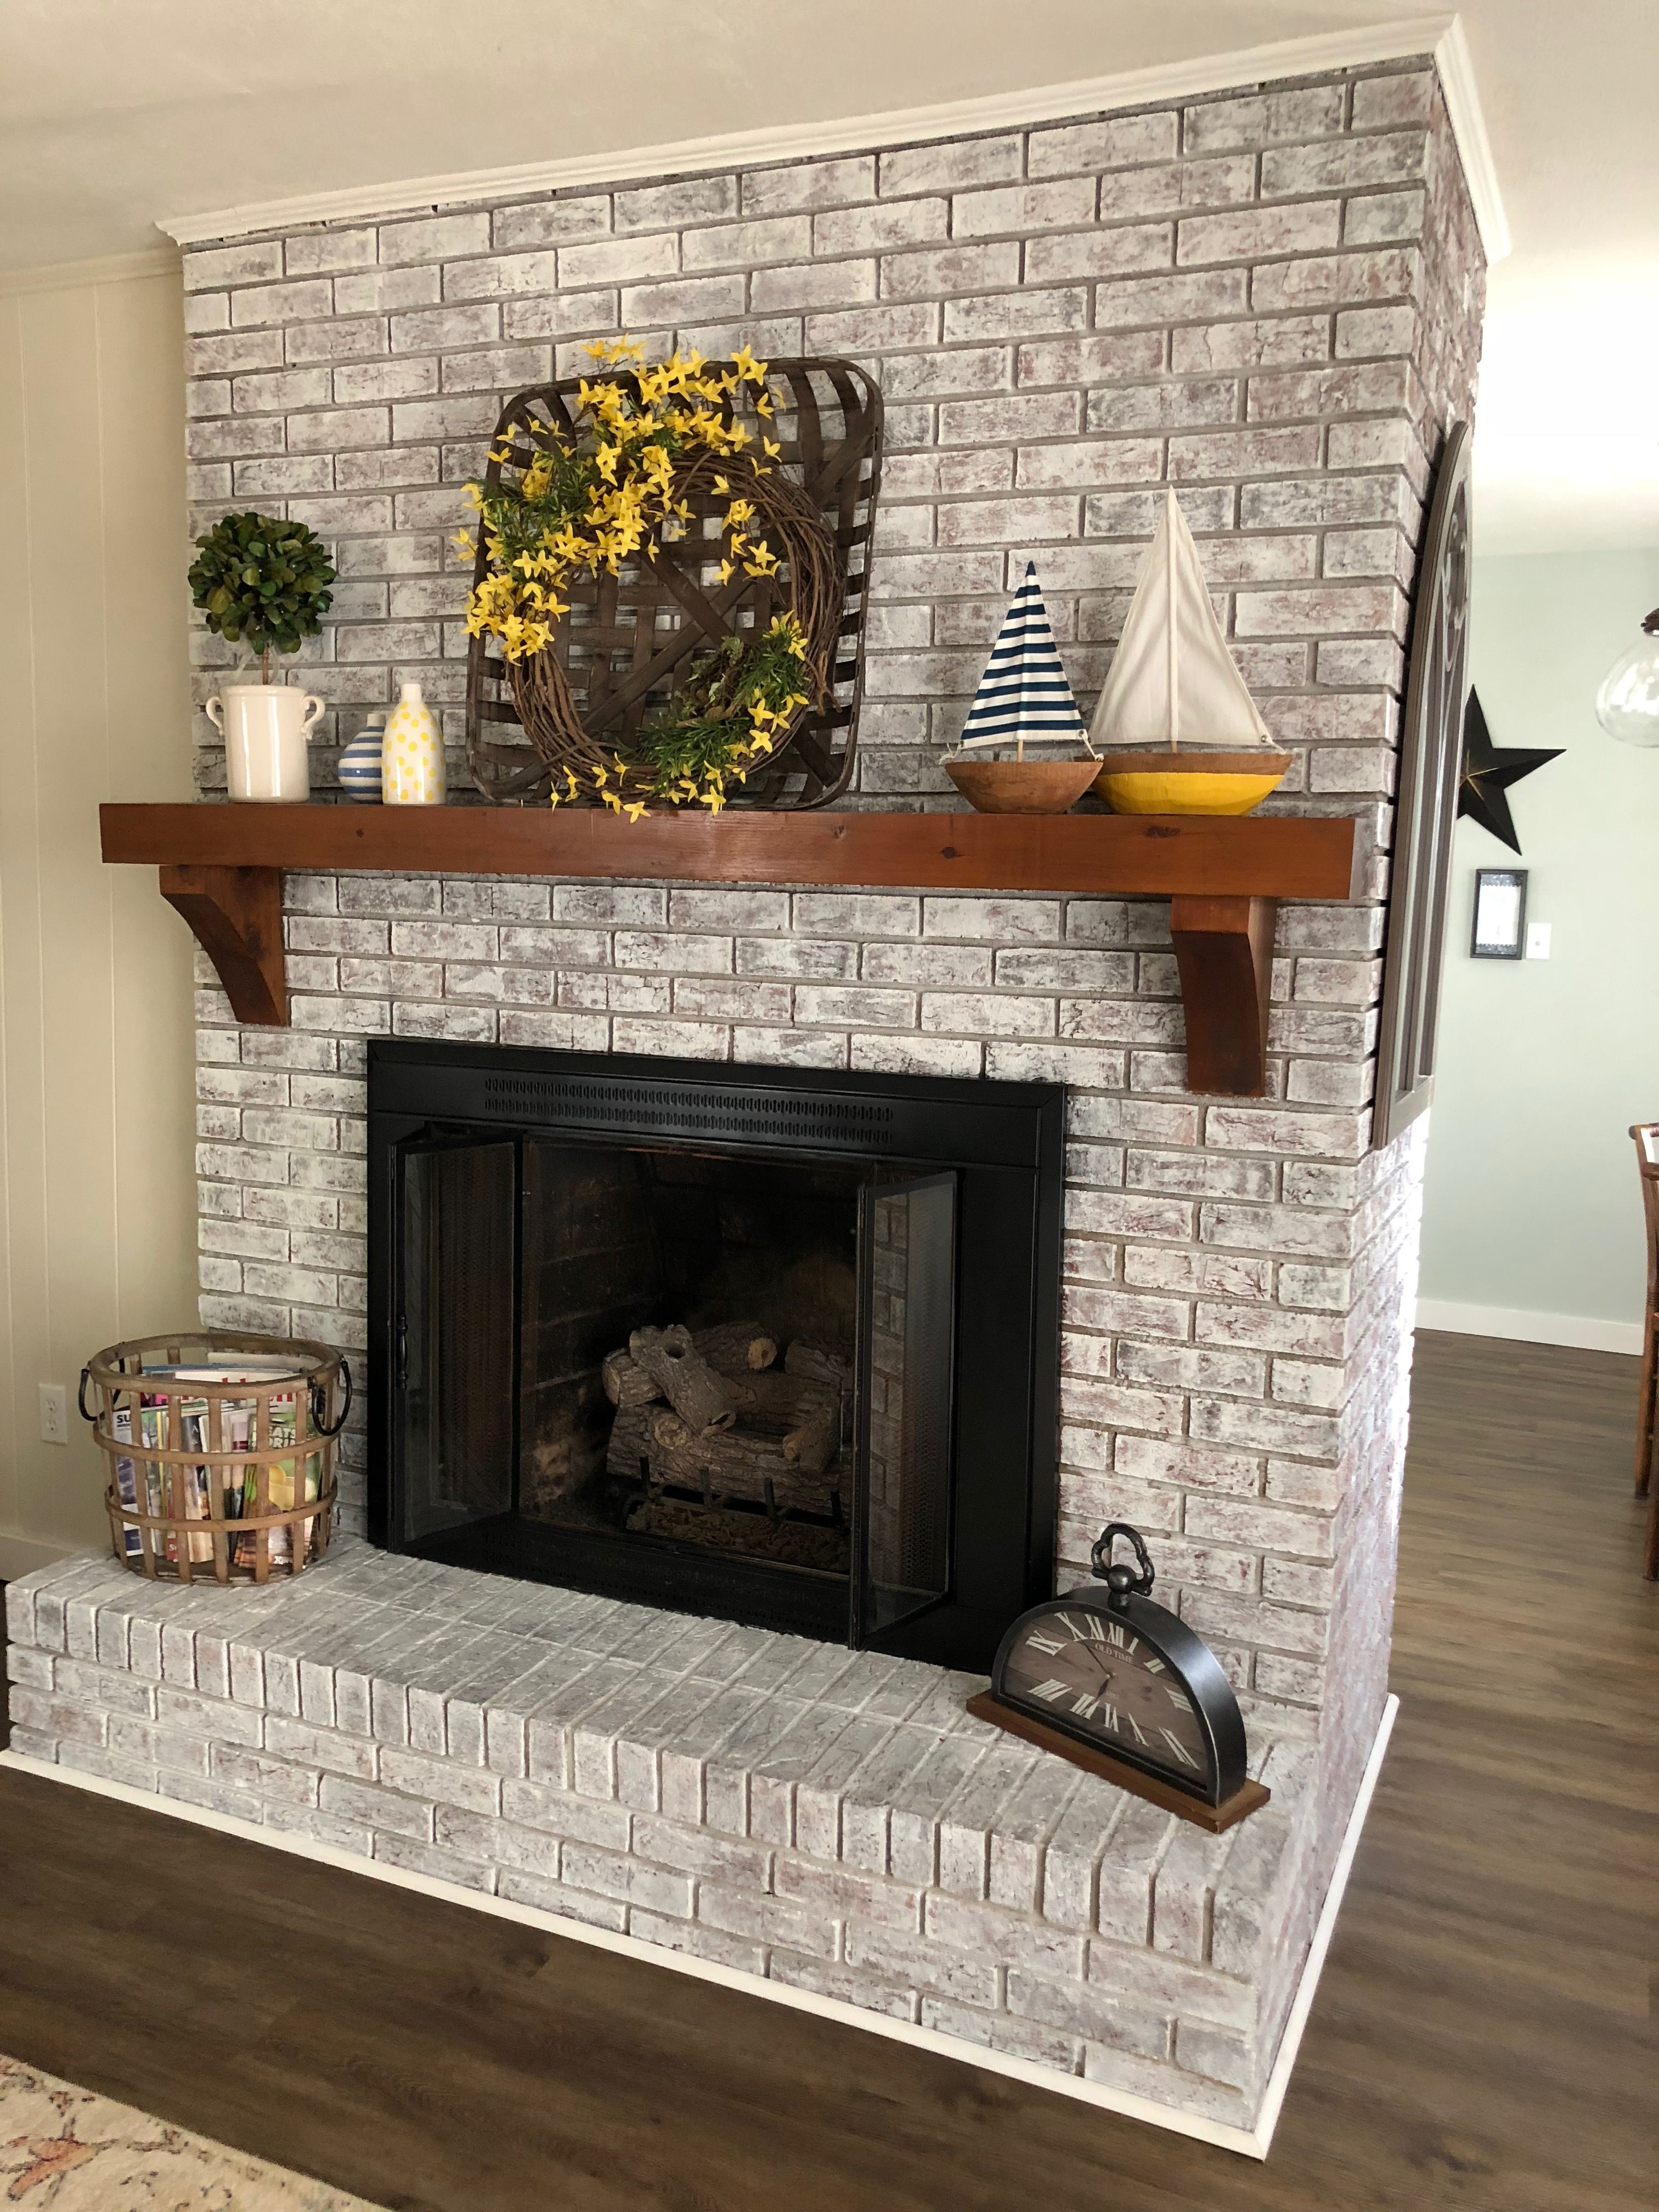 Painted Brick Fireplace Sw Pure White Over Dark Red Brick Boats Vases Target Toba Brick Fireplace Decor White Wash Brick Fireplace Painted Brick Fireplaces